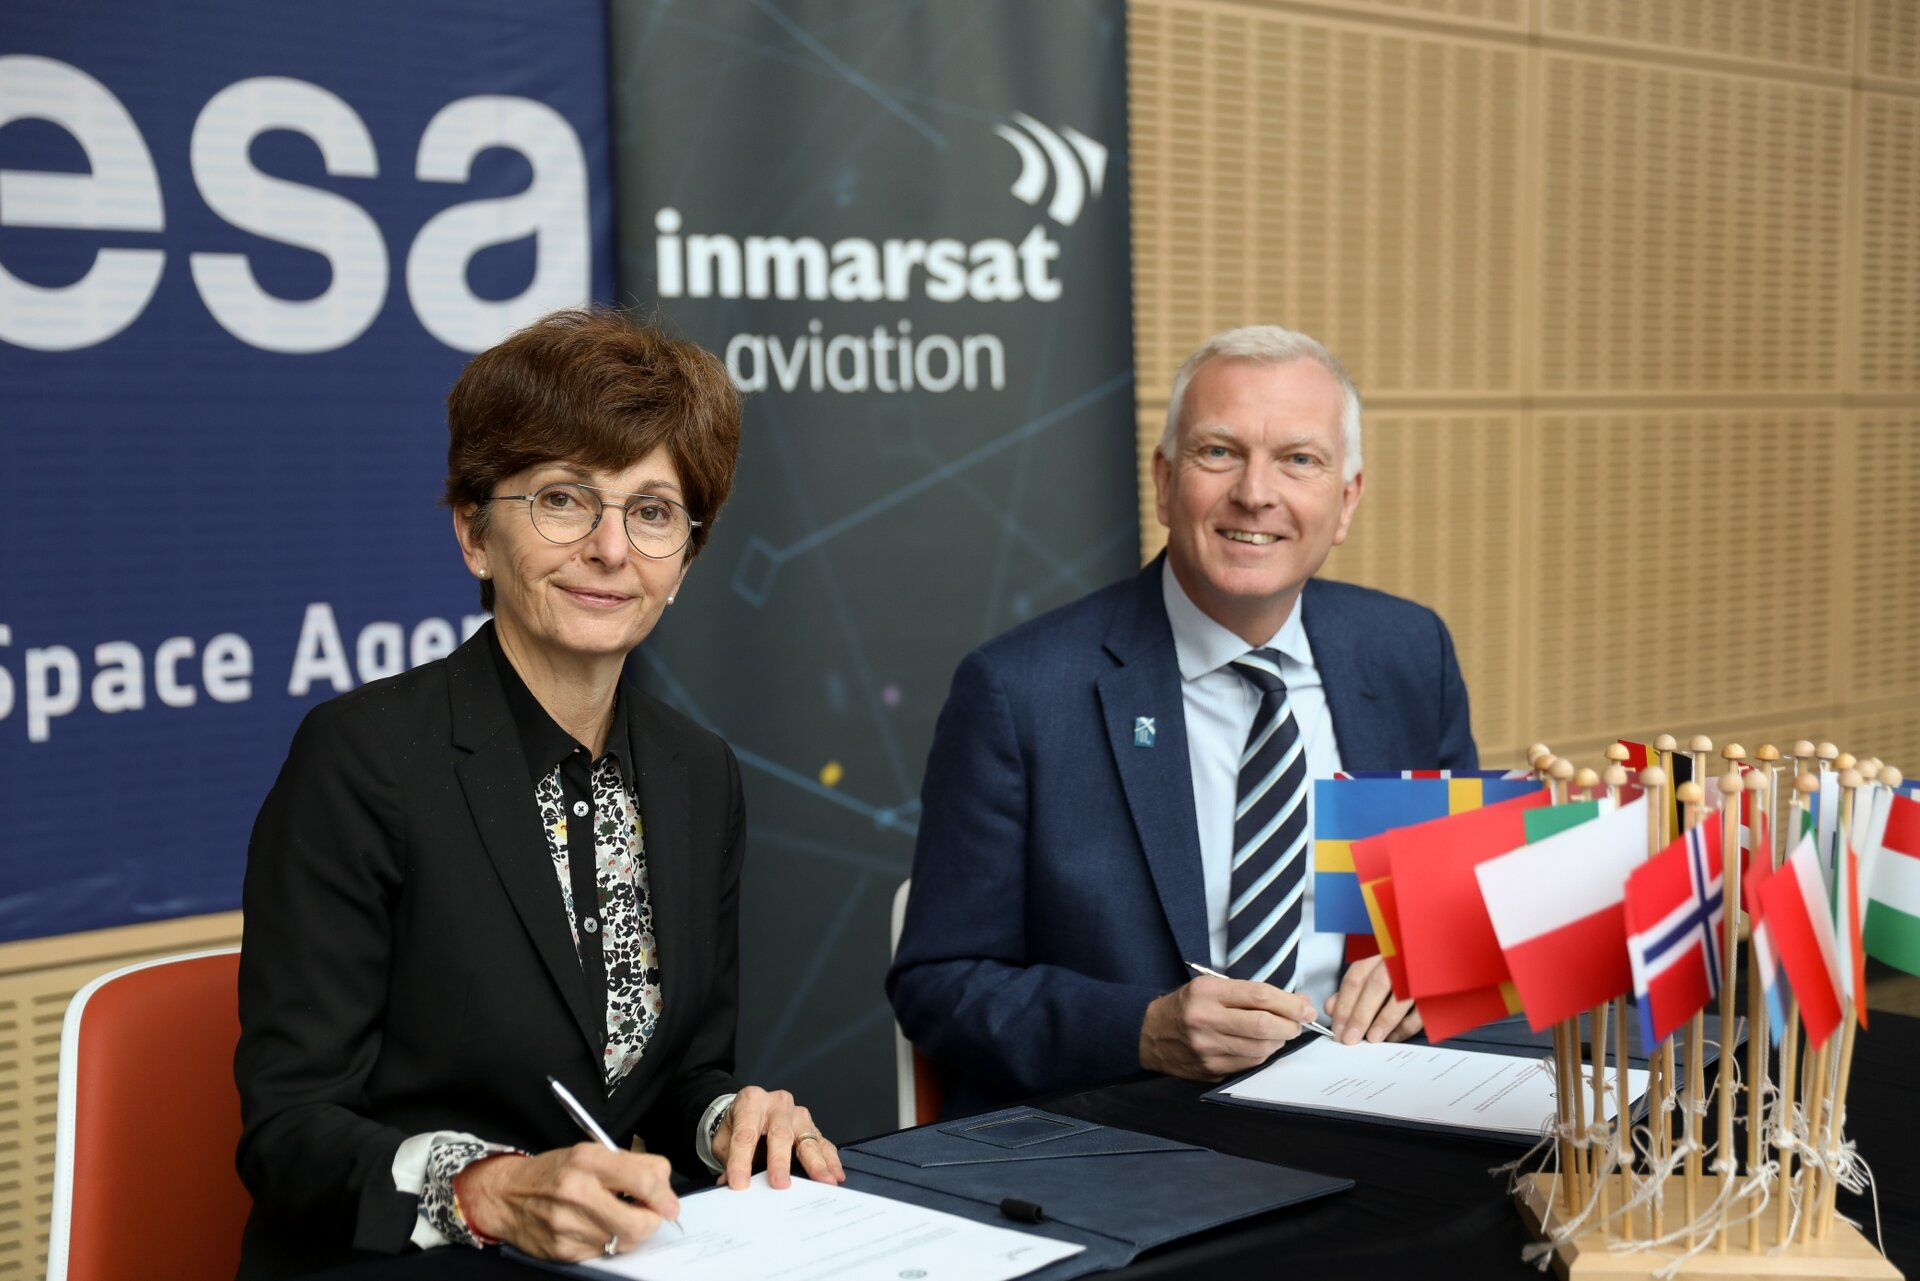 ESA and Inmarsat sign agreement to use satellites for air traffic management